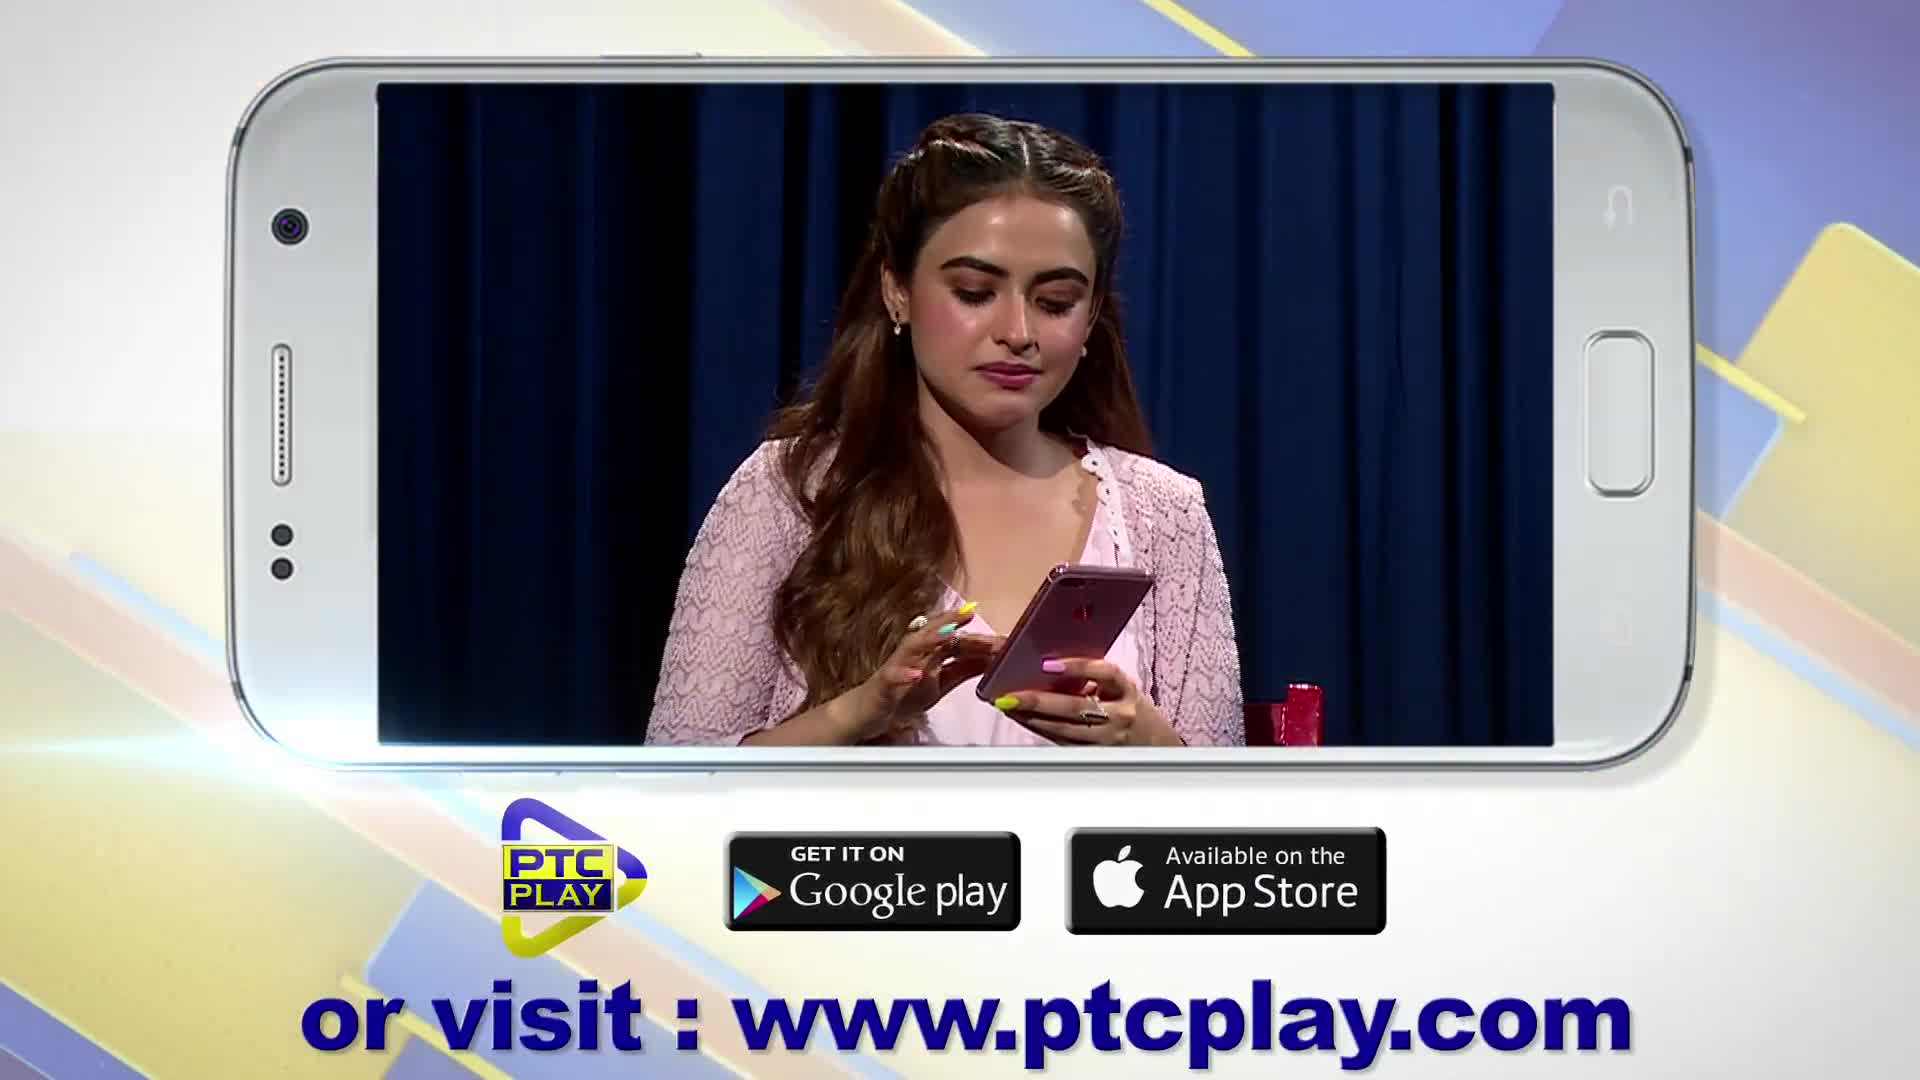 Download PTC Play - ShareChat